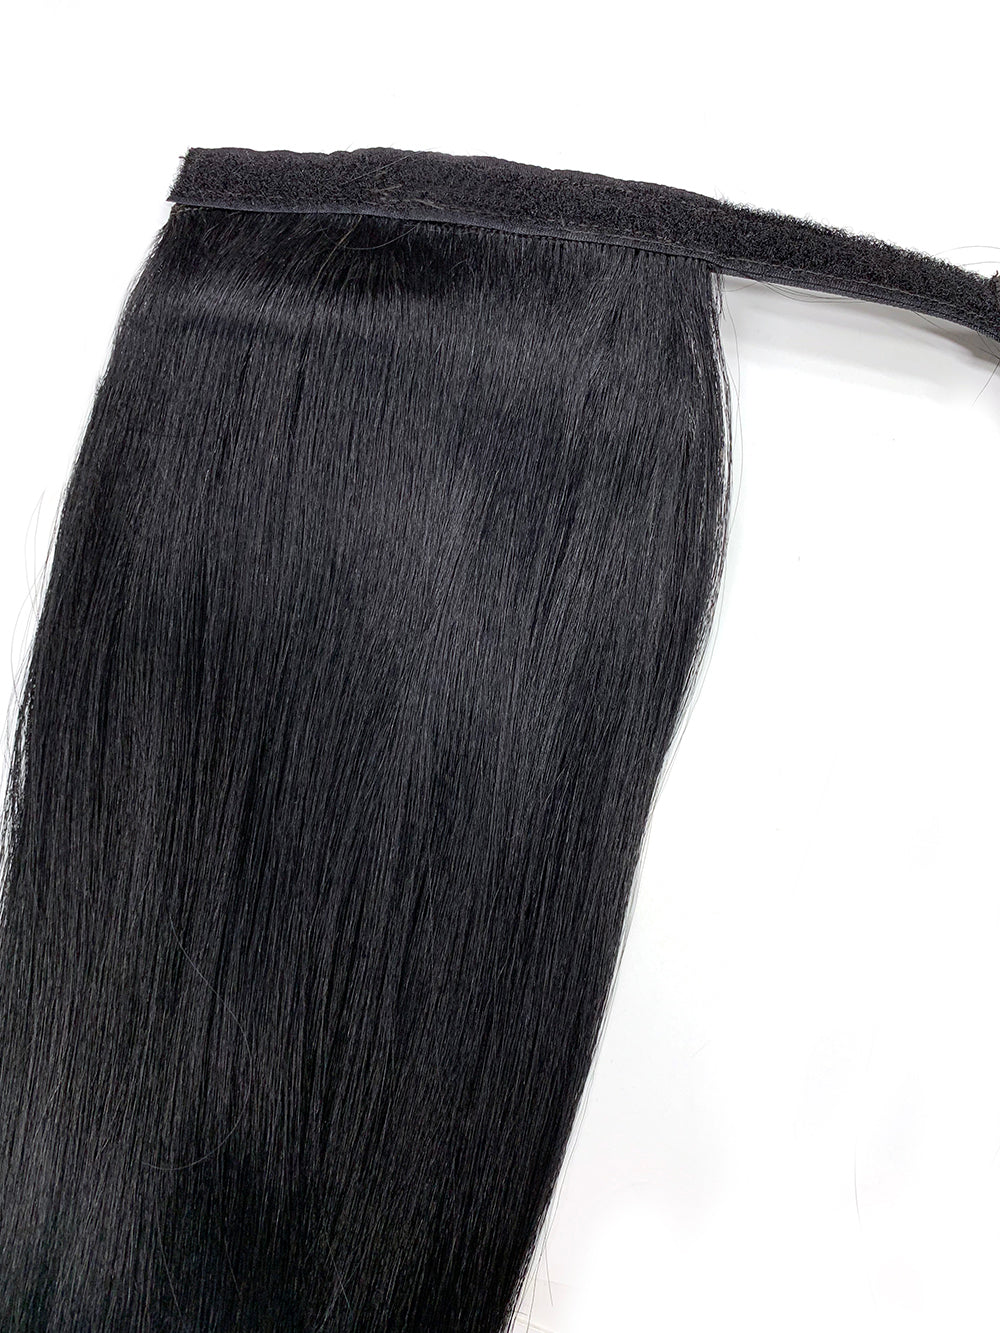 "Wrap Around 100% Human Hair Ponytail in Yaki Perm Straight 22"" - Xtra Thick - Hairesthetic"